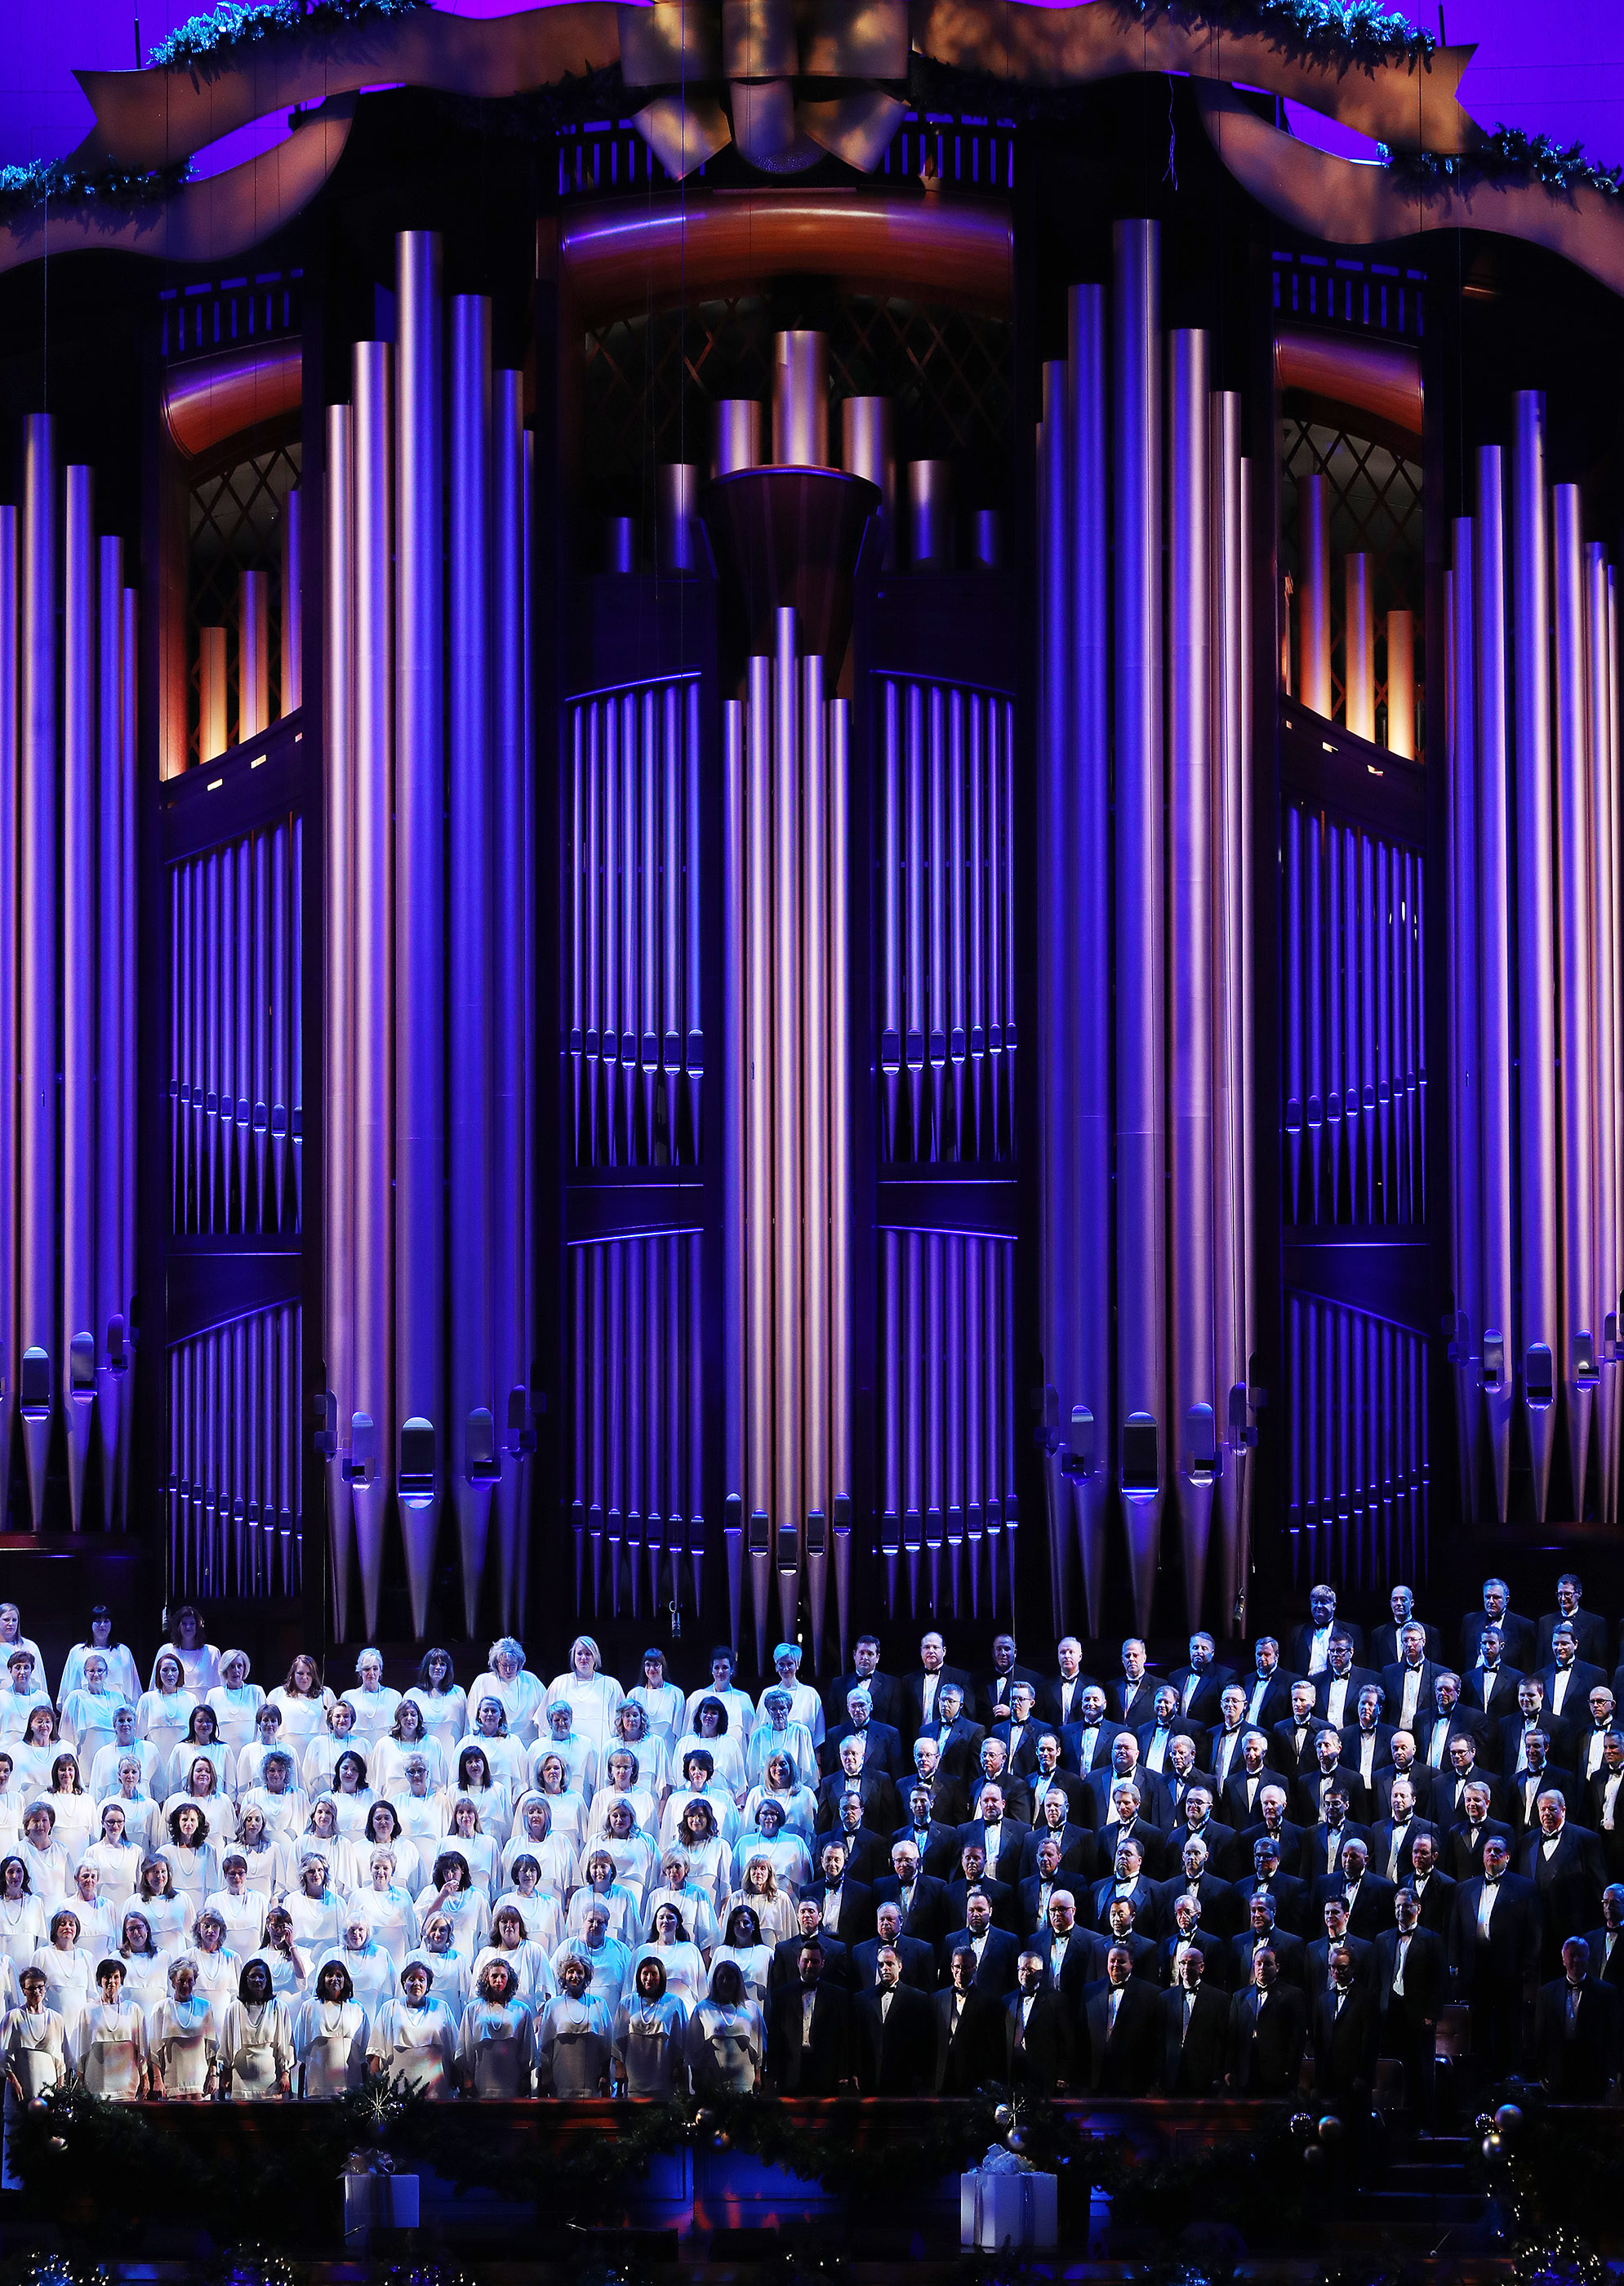 The Tabernacle Choir at Temple Square during their opening Christmas concert at the Conference Center at the Conference Center in Salt Lake City on Thursday, Dec. 13, 2018.